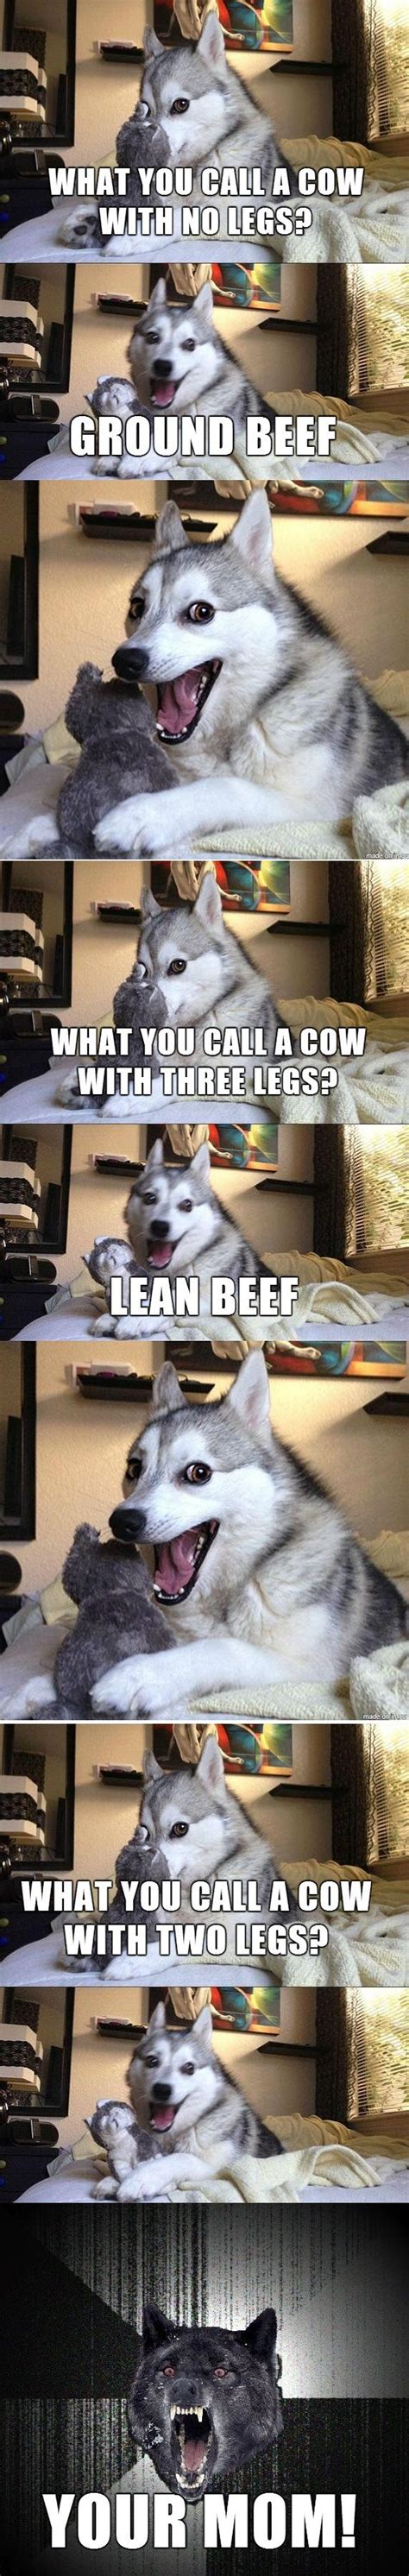 Pun Husky Meme - the 25 best cow puns ideas on pinterest cow meme farm